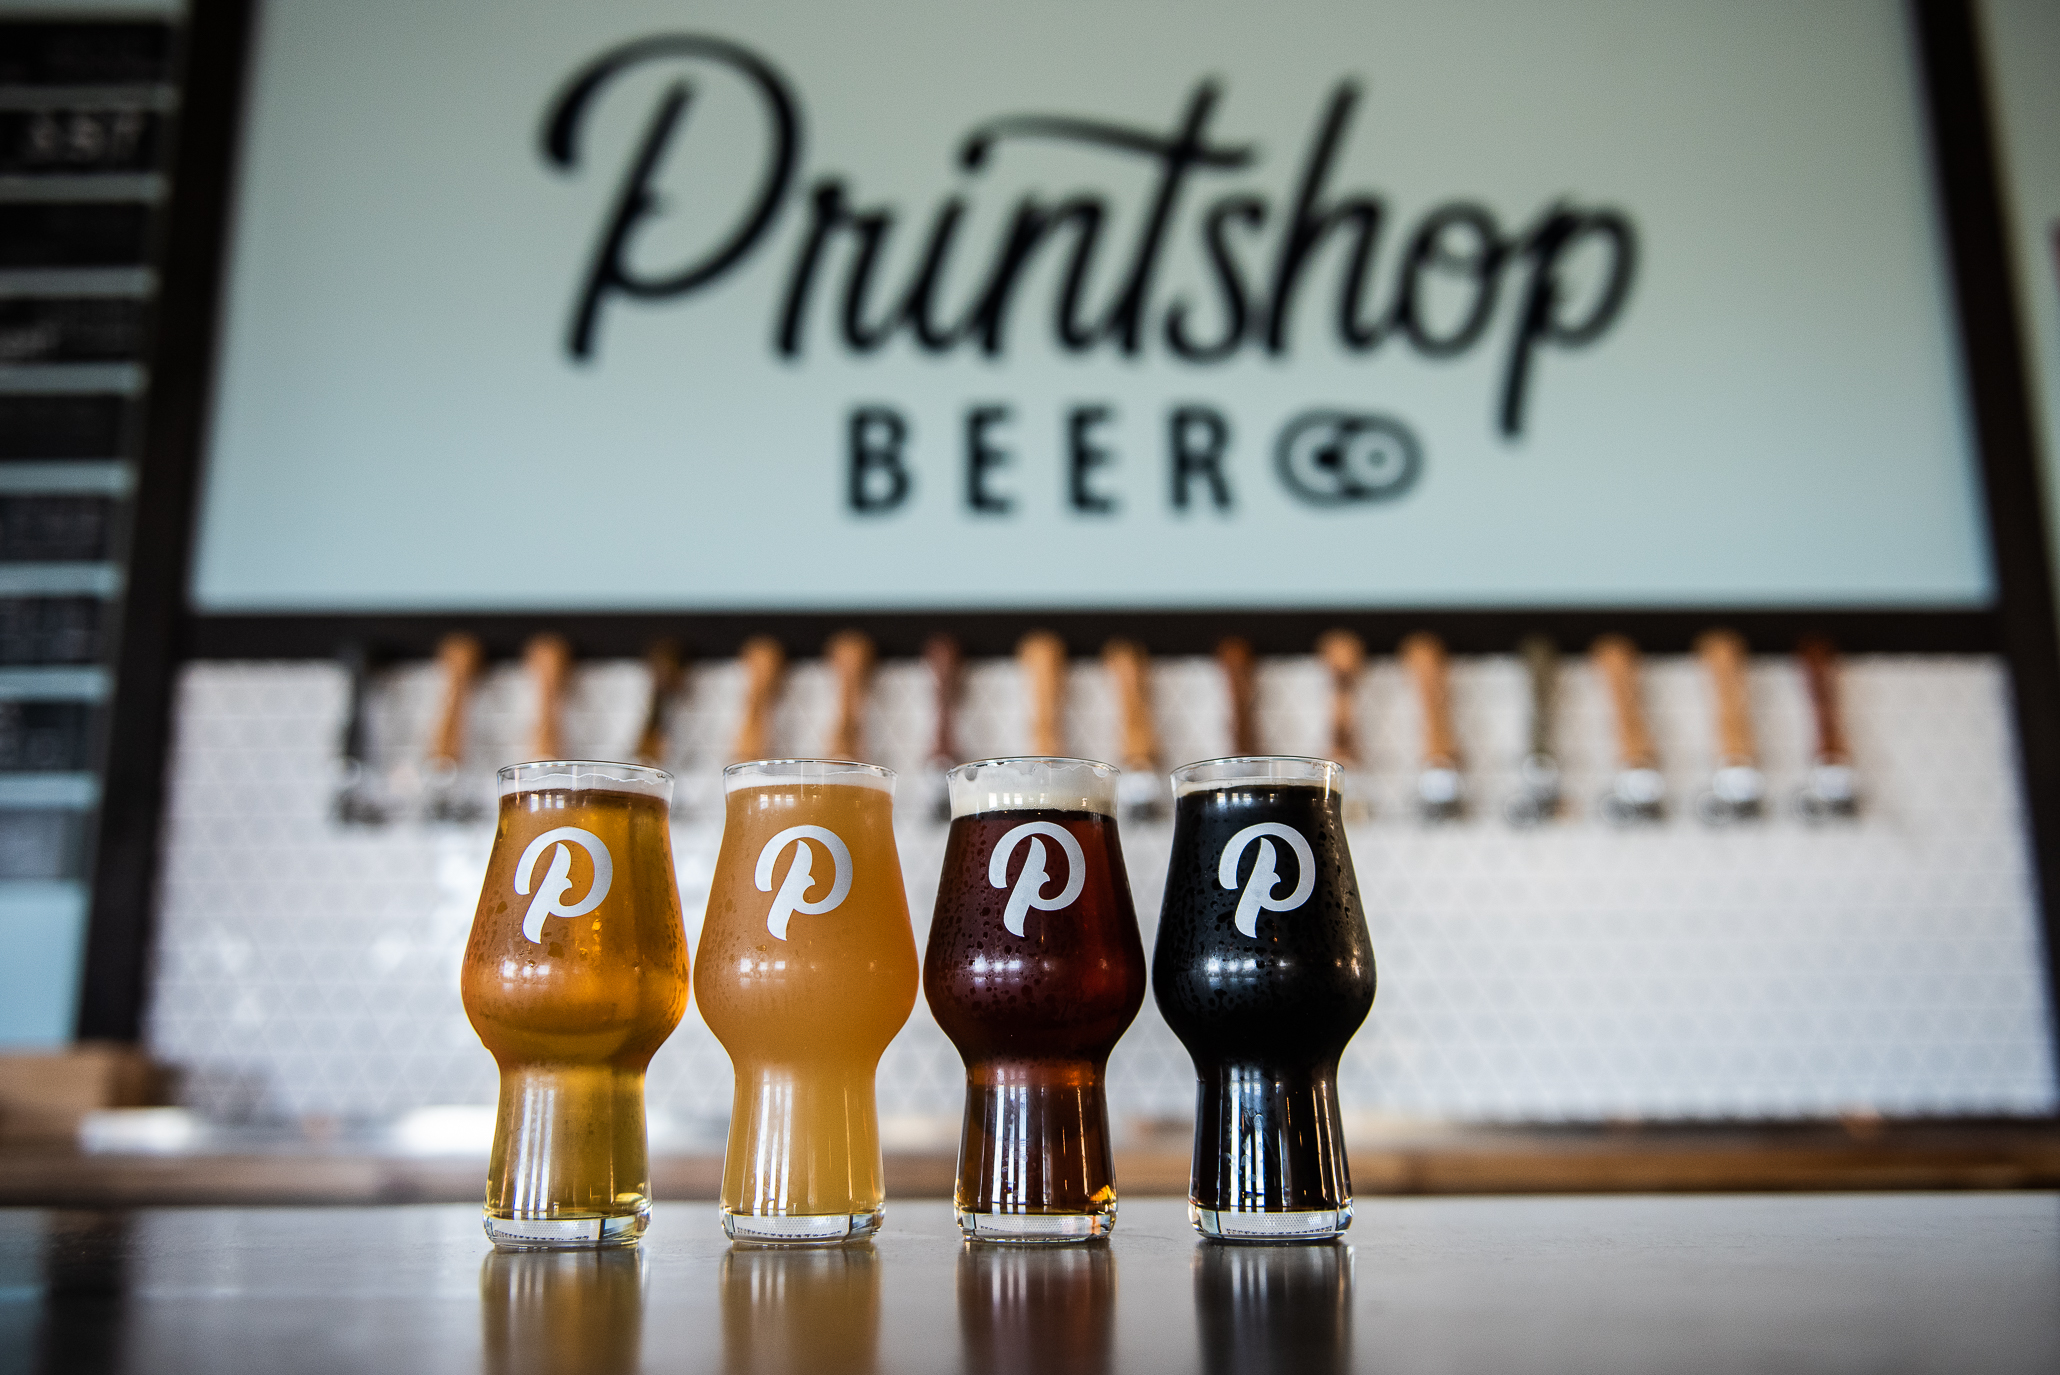 Printshop Beer Co 1.jpg